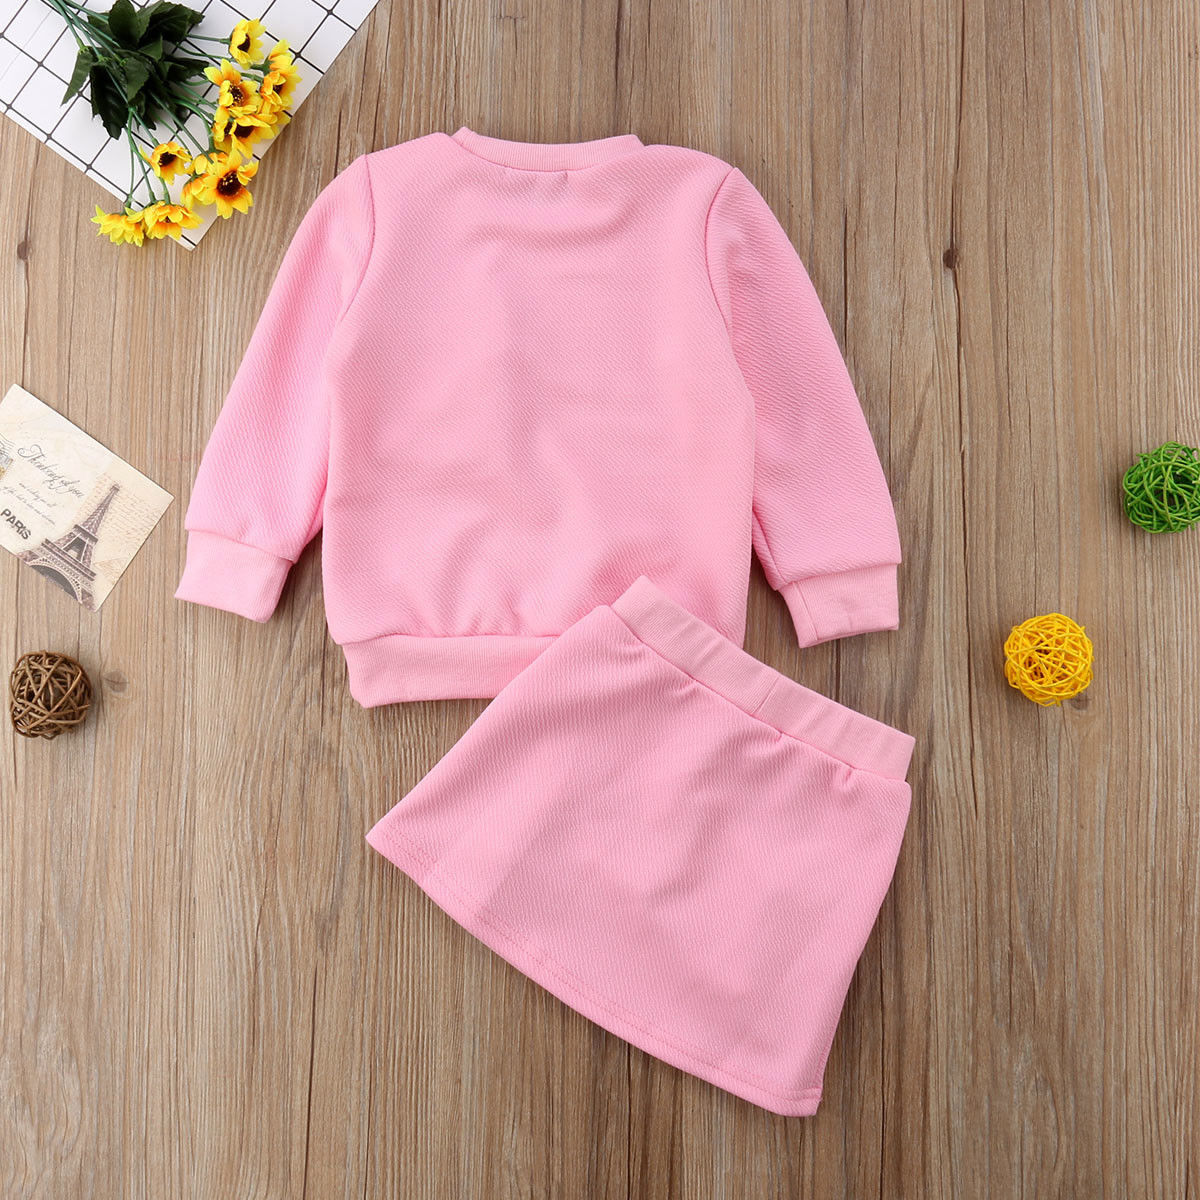 Newborn Baby Girls Outfits Long Sleeve Shirt Skirts Tassel Pink Red Blue Fall Spring Winter Clothes Set in Clothing Sets from Mother Kids